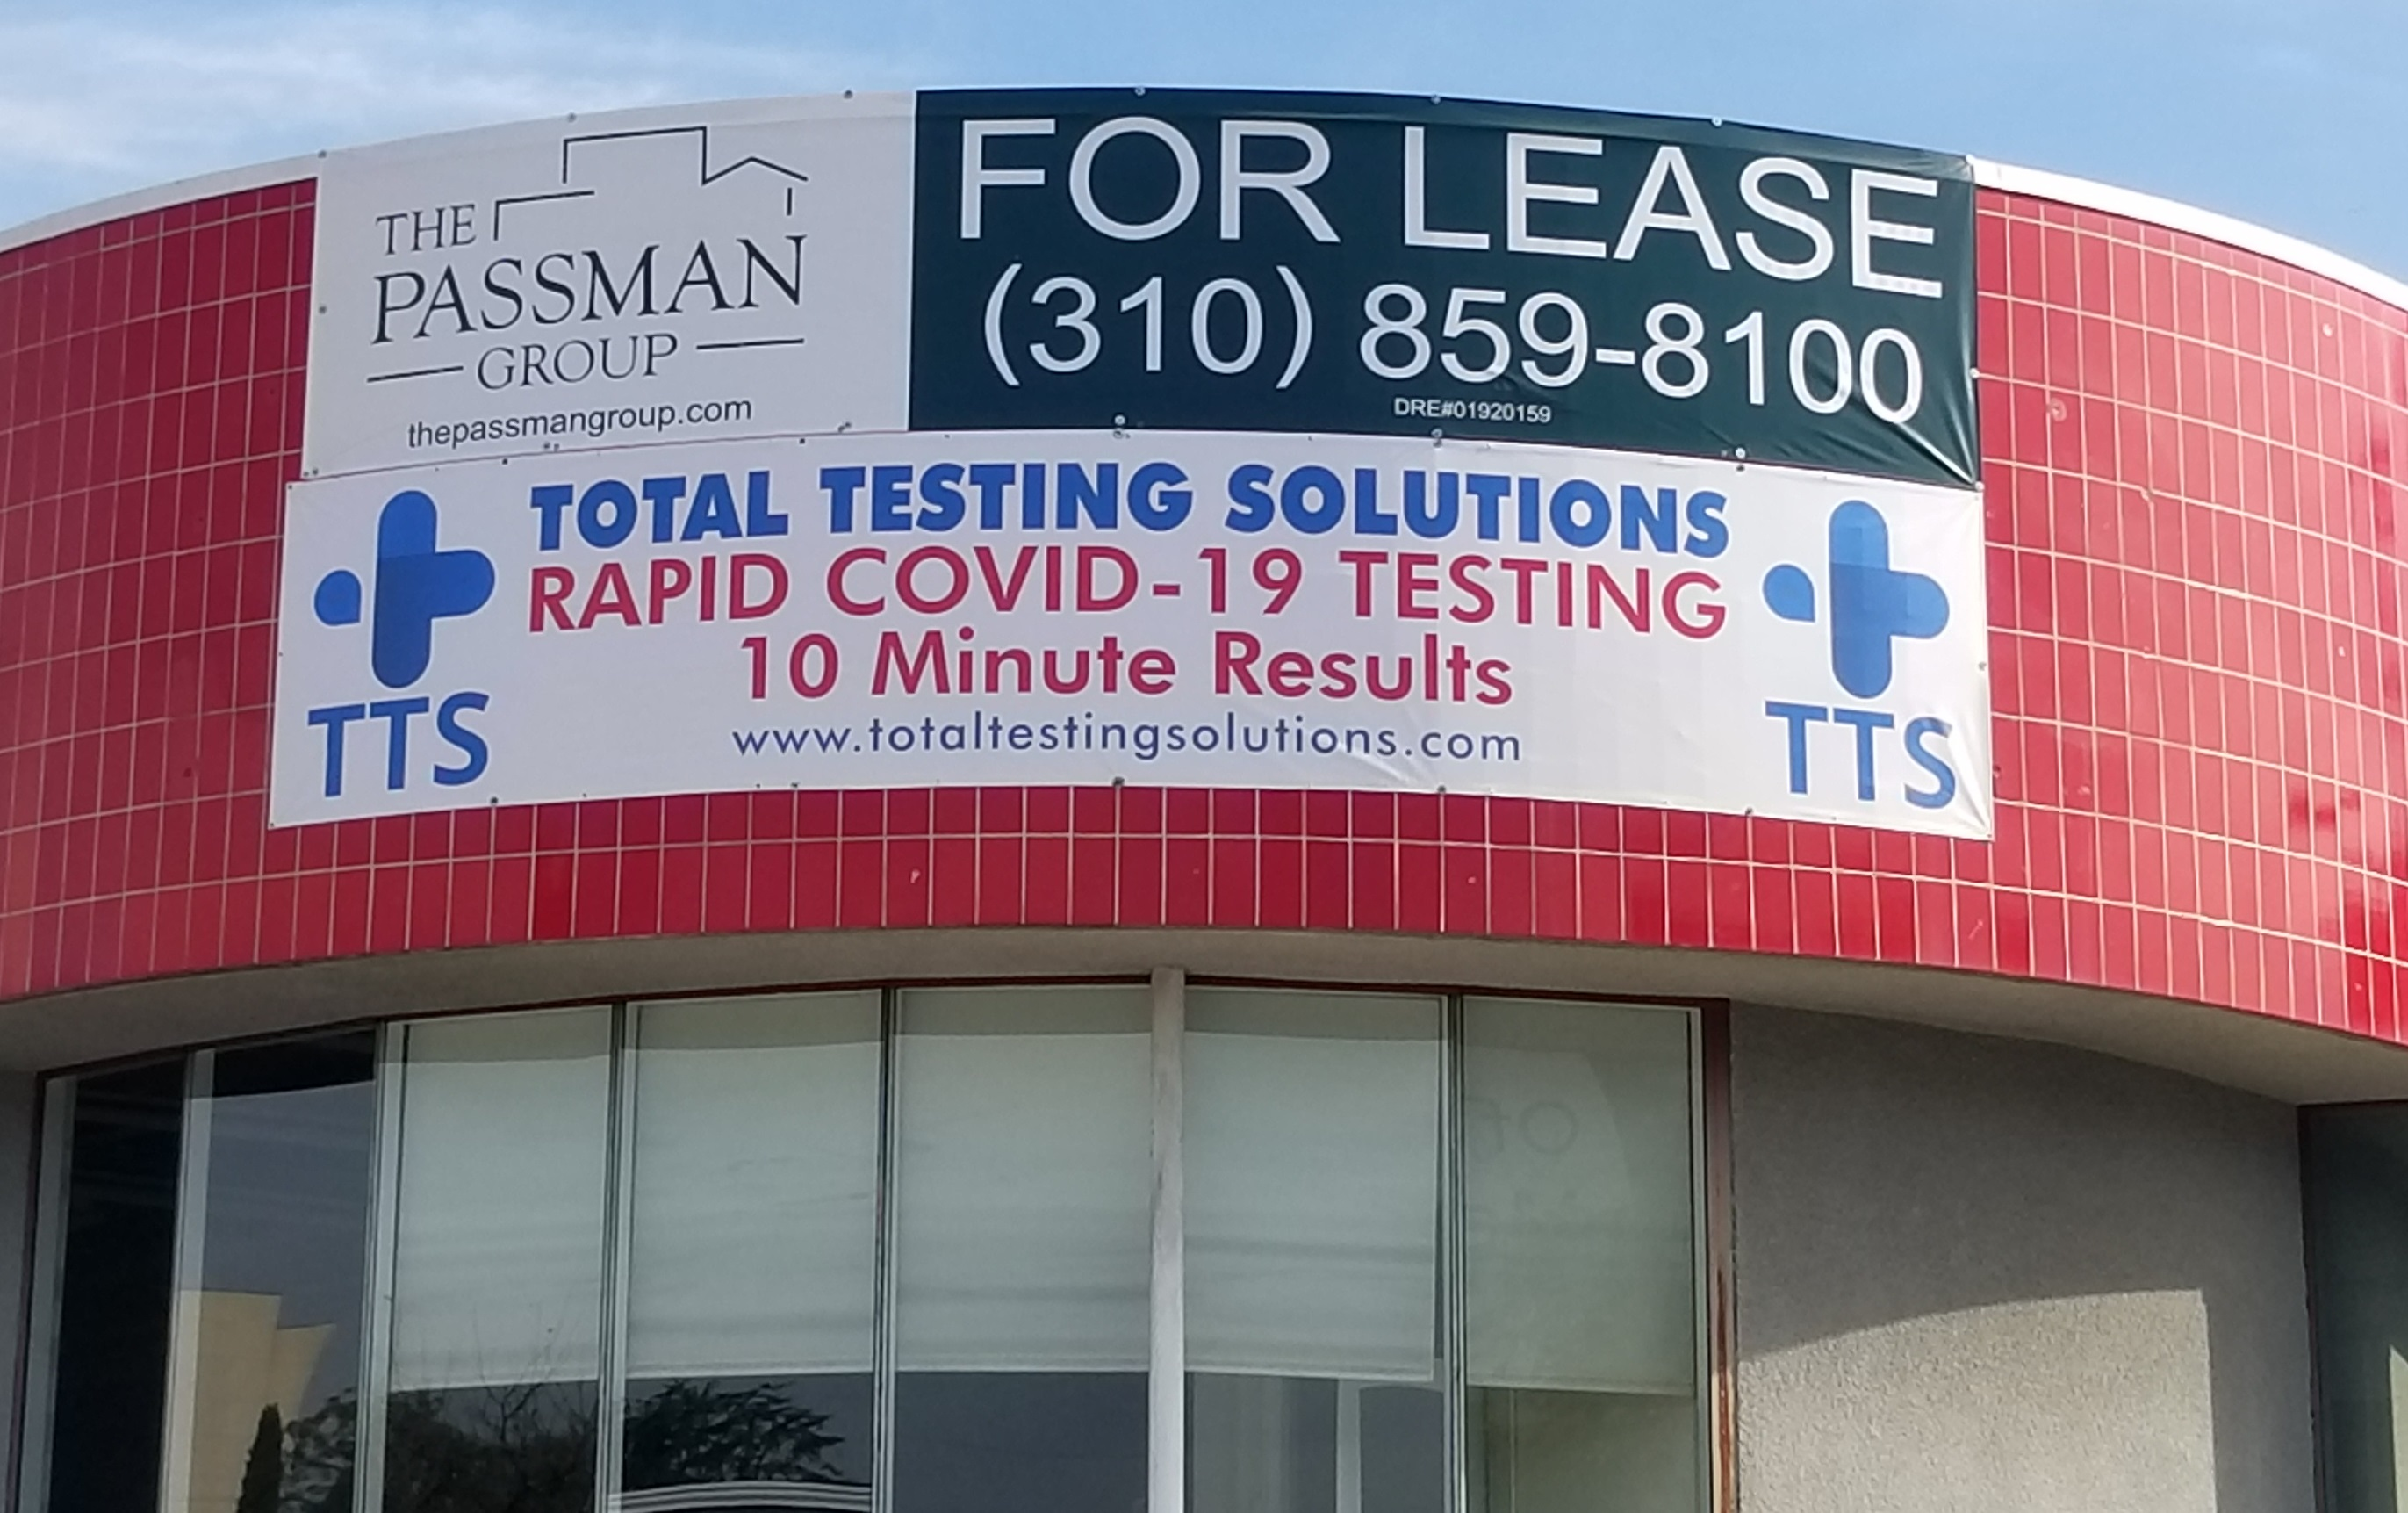 Raising awareness about COVID-19 testing facilities is important. Hence these large banners for Total Testing Solution's site in Studio City.